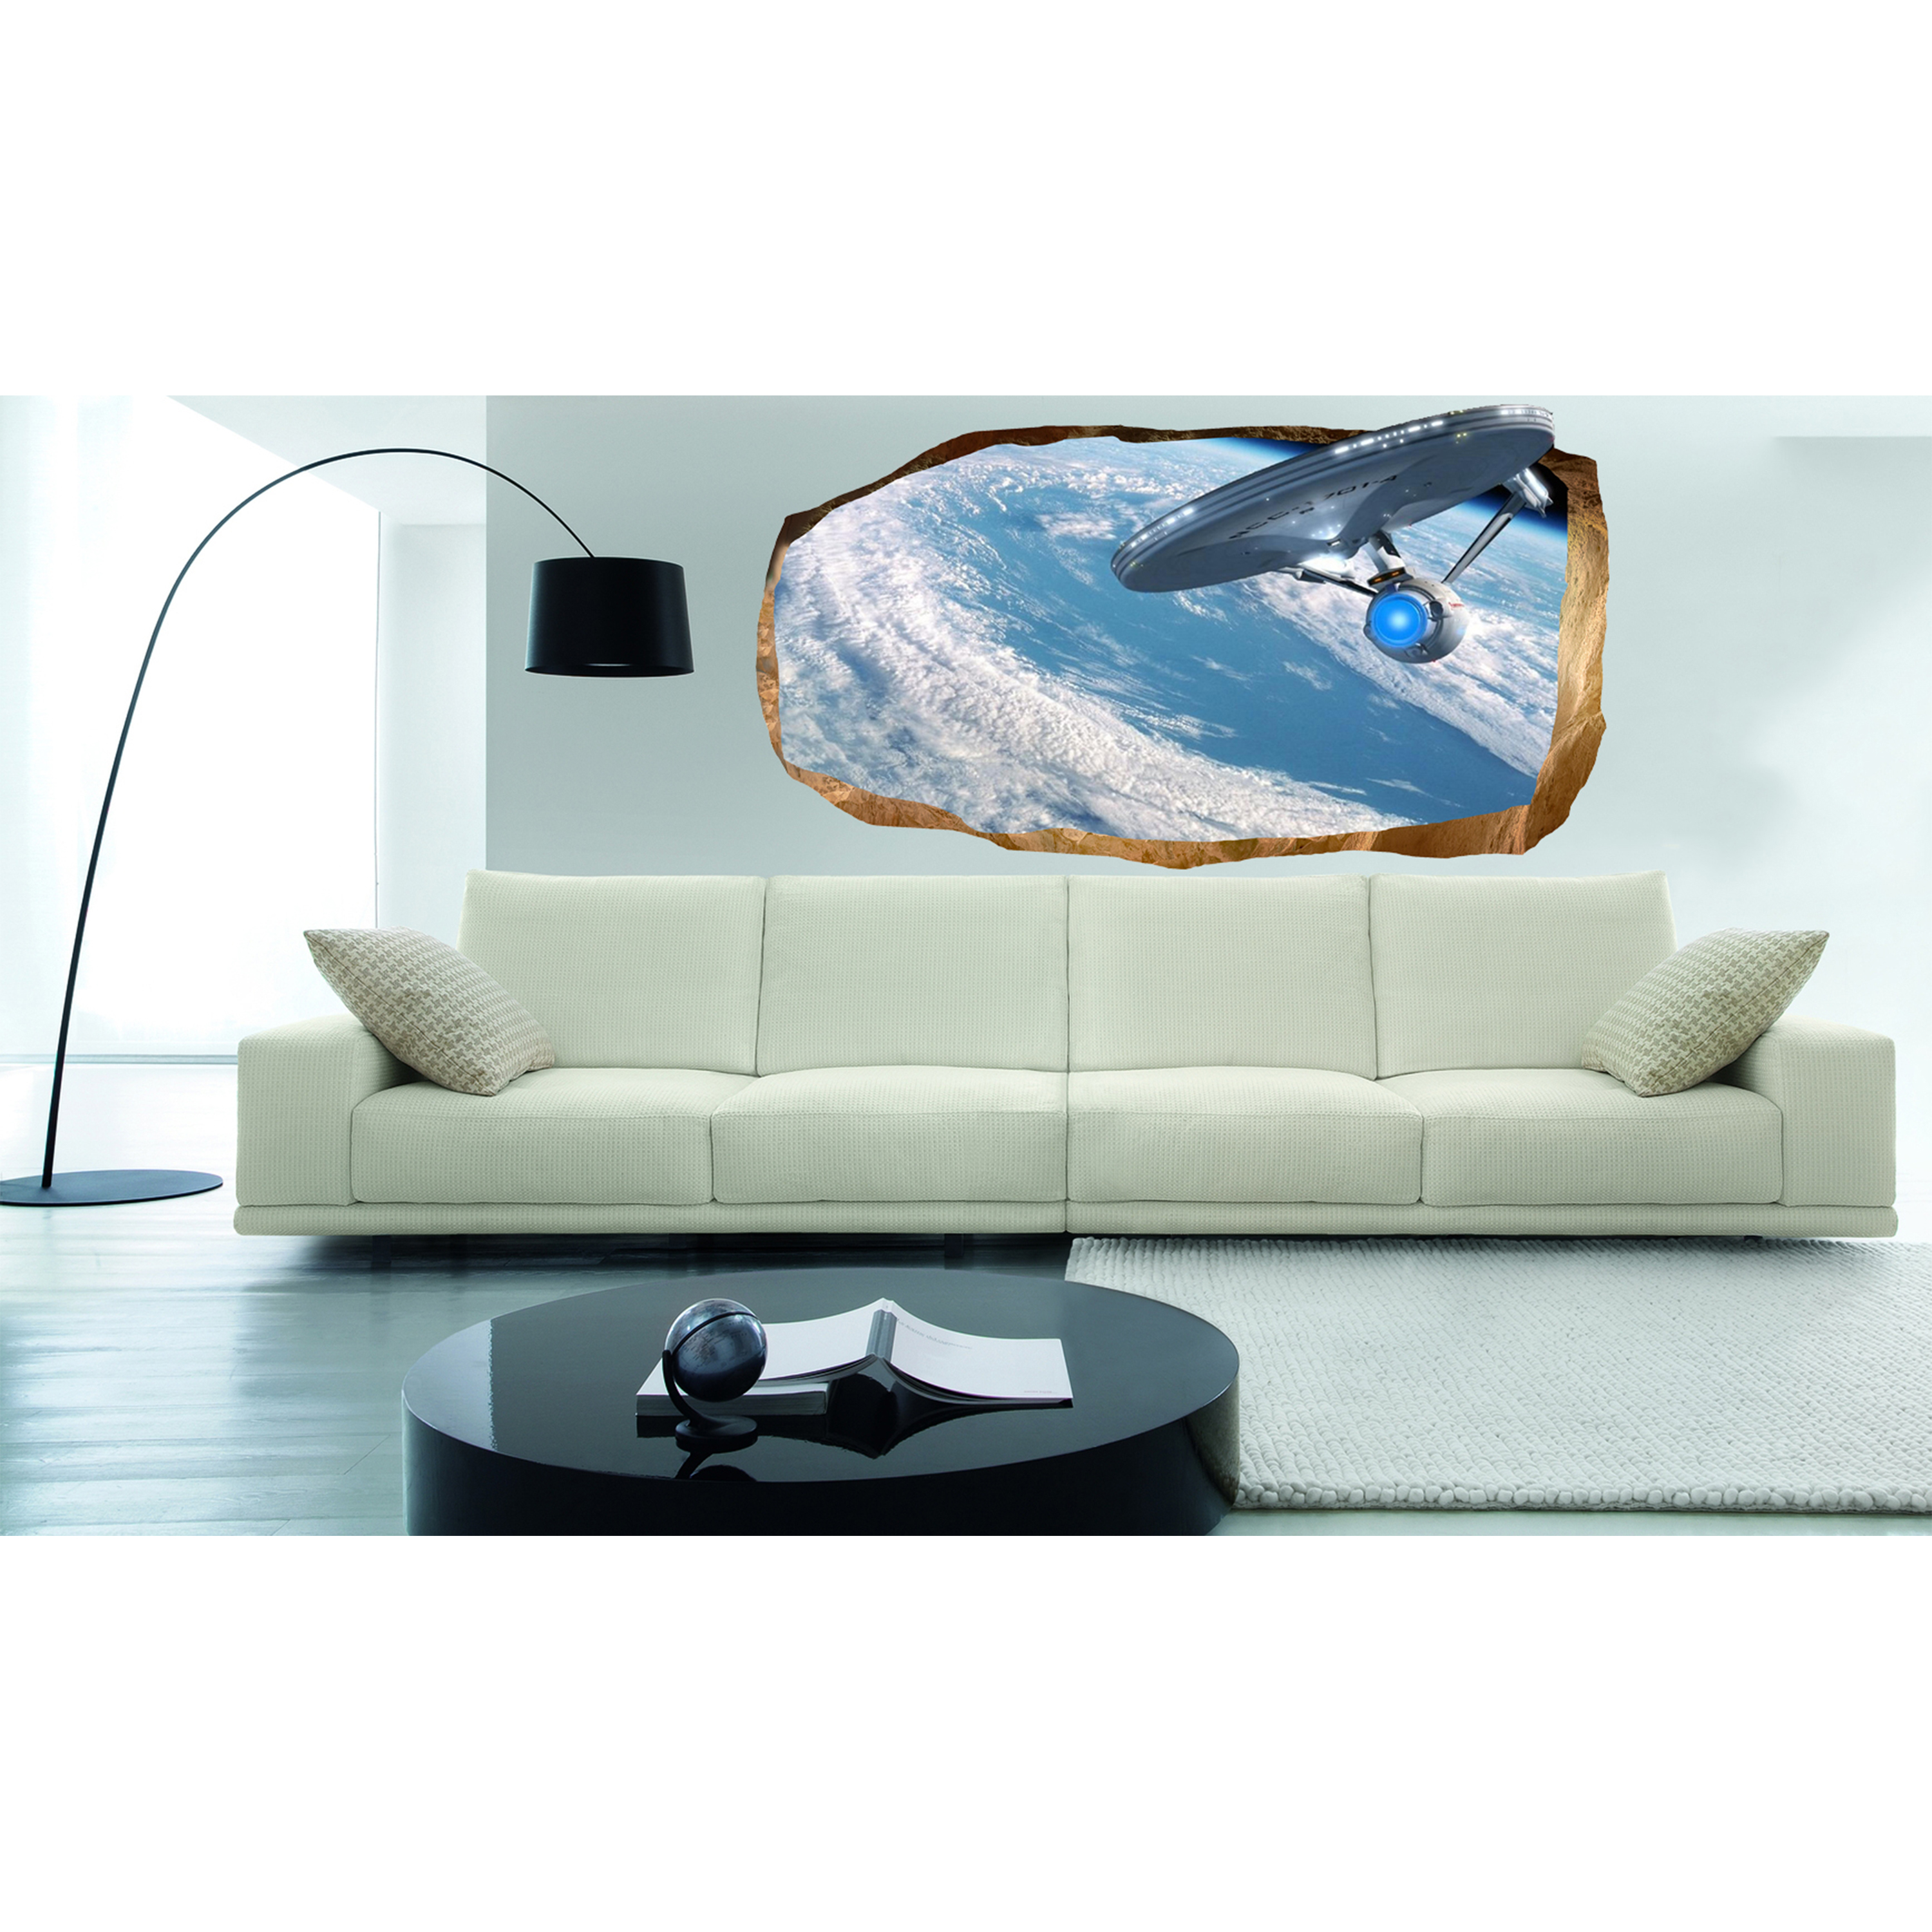 Star trek wall mural Home Garden Compare Prices at Nextag